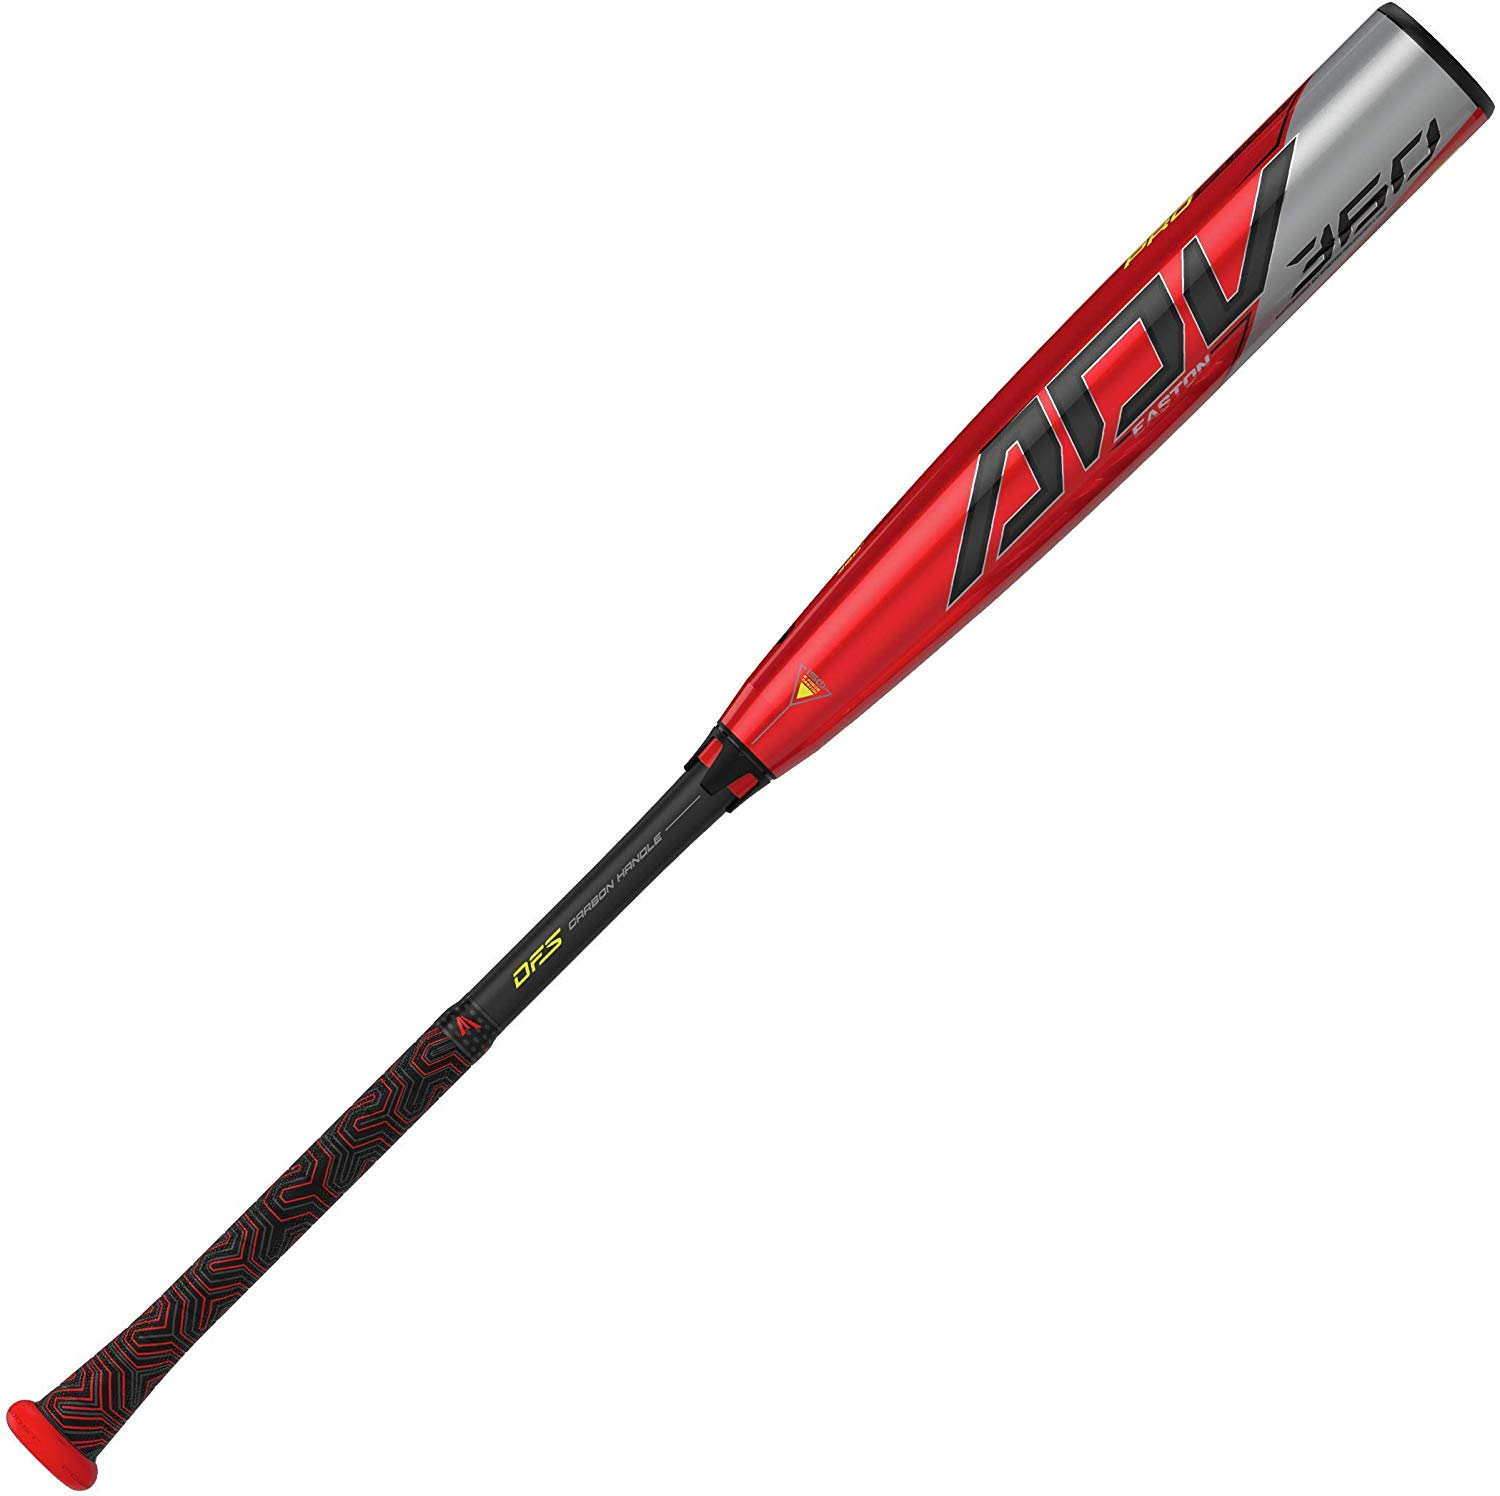 easton-adv-360-3-bbcor-2020-baseball-bat-32-inch-29-oz BB20ADV-3229 Easton 628412266137 Launch Comp - Launch Composite Technology combined with 360 Engineering for